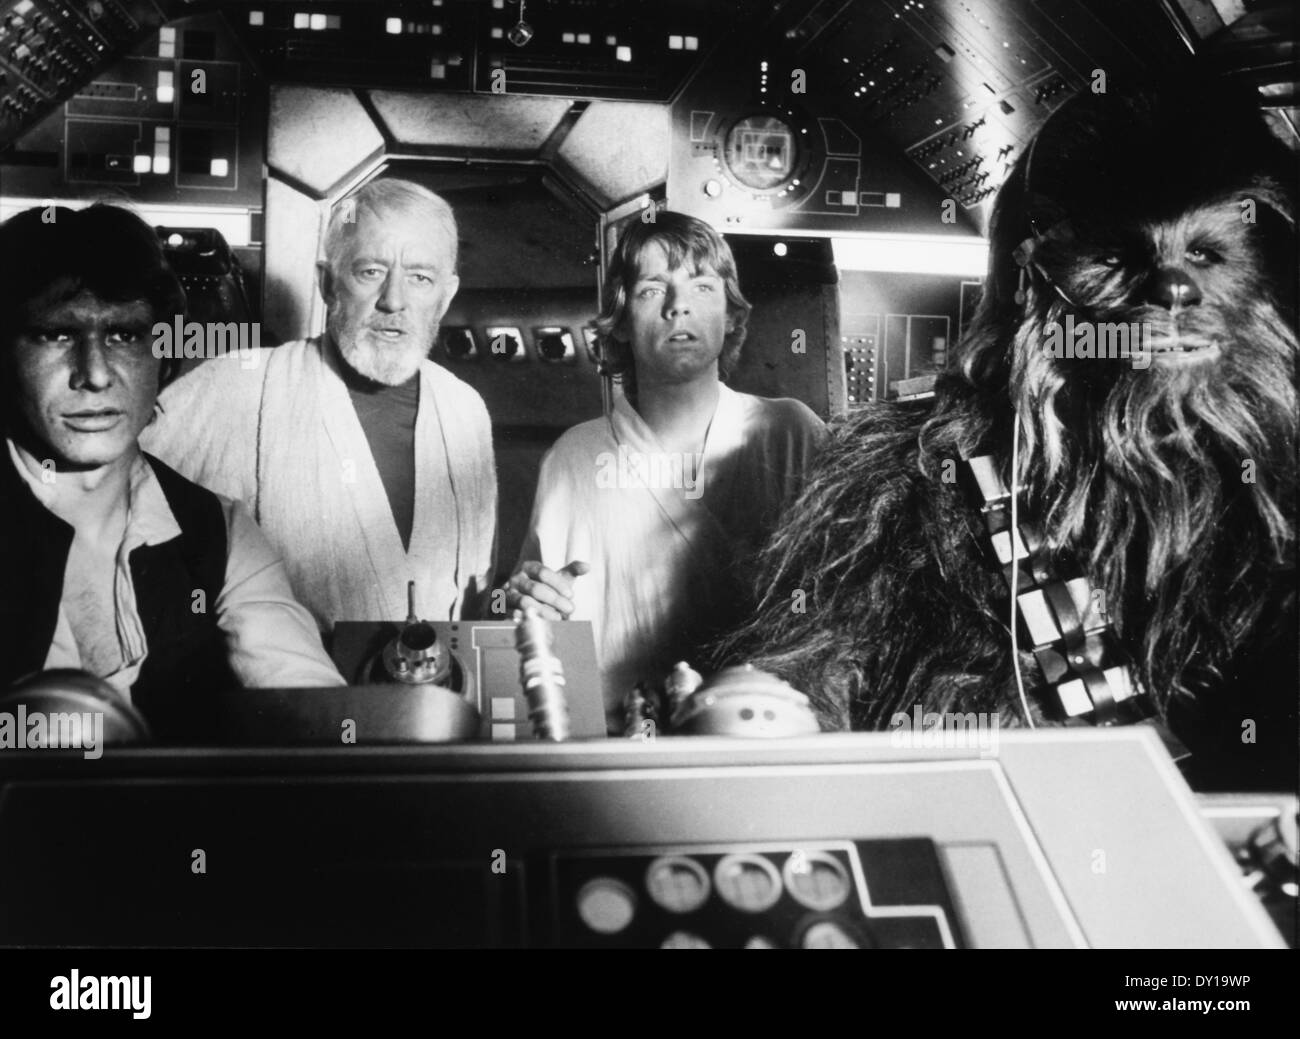 Peter Mayhew, Harrison Ford, Alec Guinness and Mark Hamill, on-set of the Film, 'Star Wars', 1977 - Stock Image